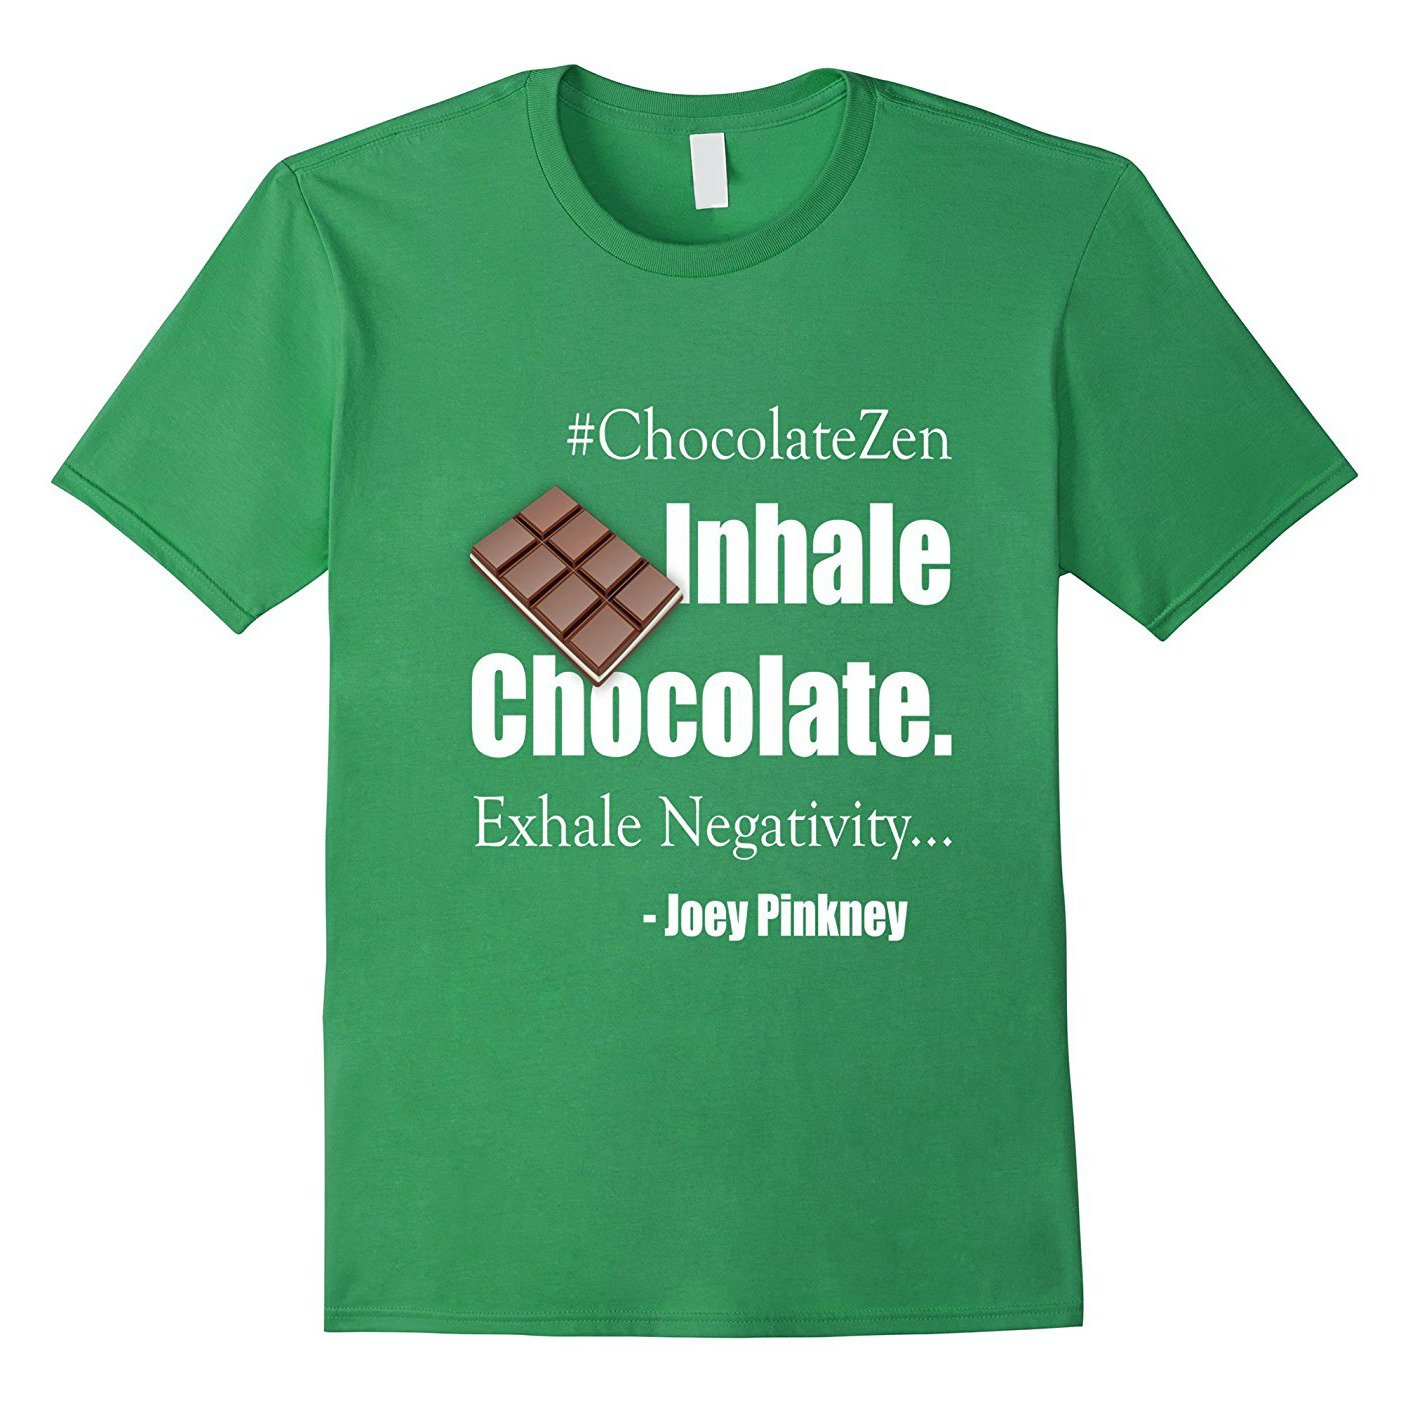 https://t.co/vuSQ8HFAmy | Do you love chocolate? Is #Grass your favorite color? This #tshirt is for YOU! #amazon https://t.co/6s2pZ0V75e